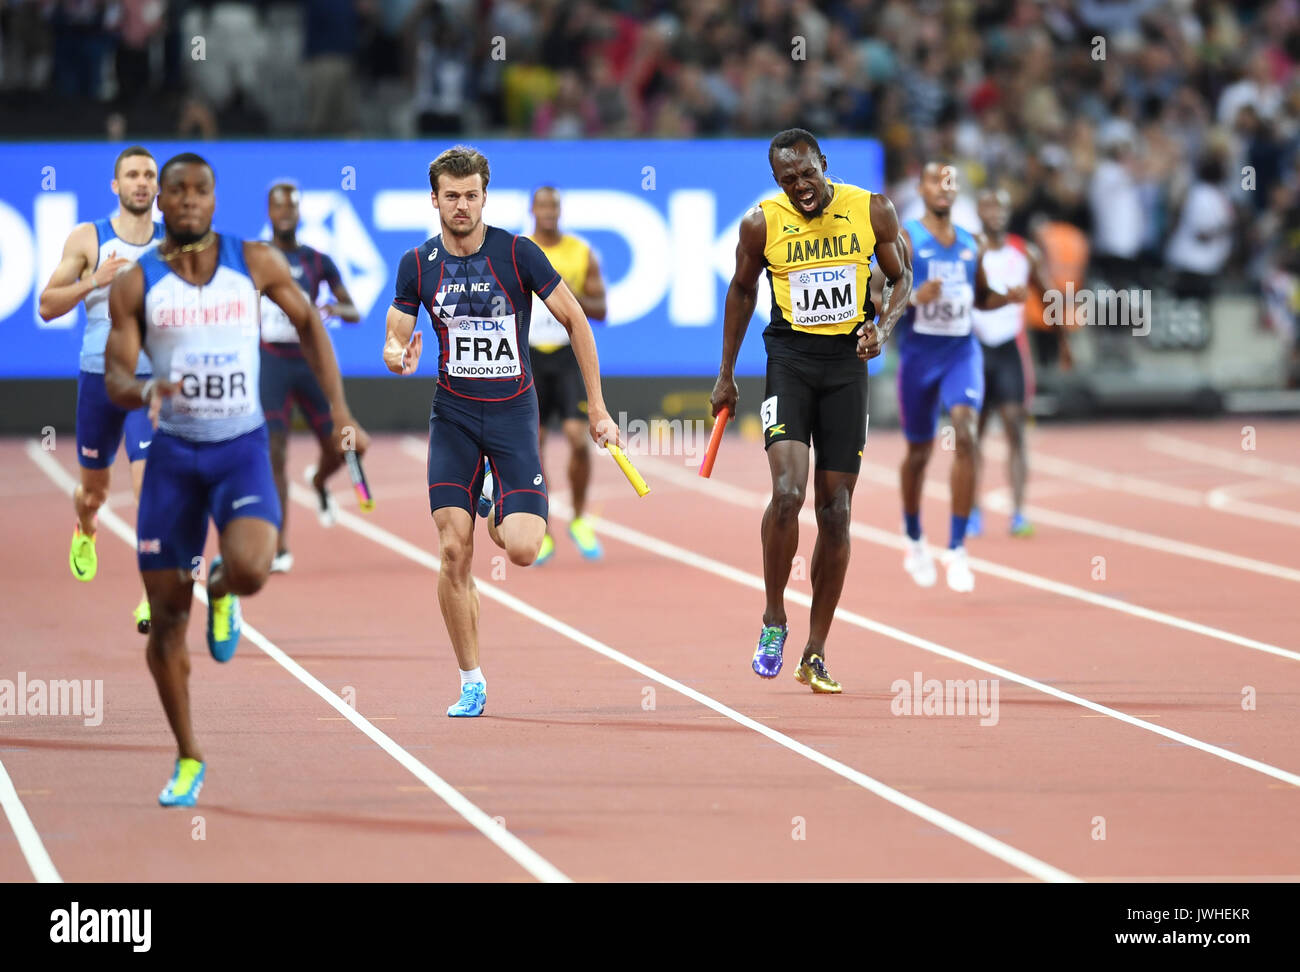 London, UK. 12th August, 2017. Usain Bolt pulled up injured in his final ever race, at the 4x100 relays at the IAAF Foto de stock